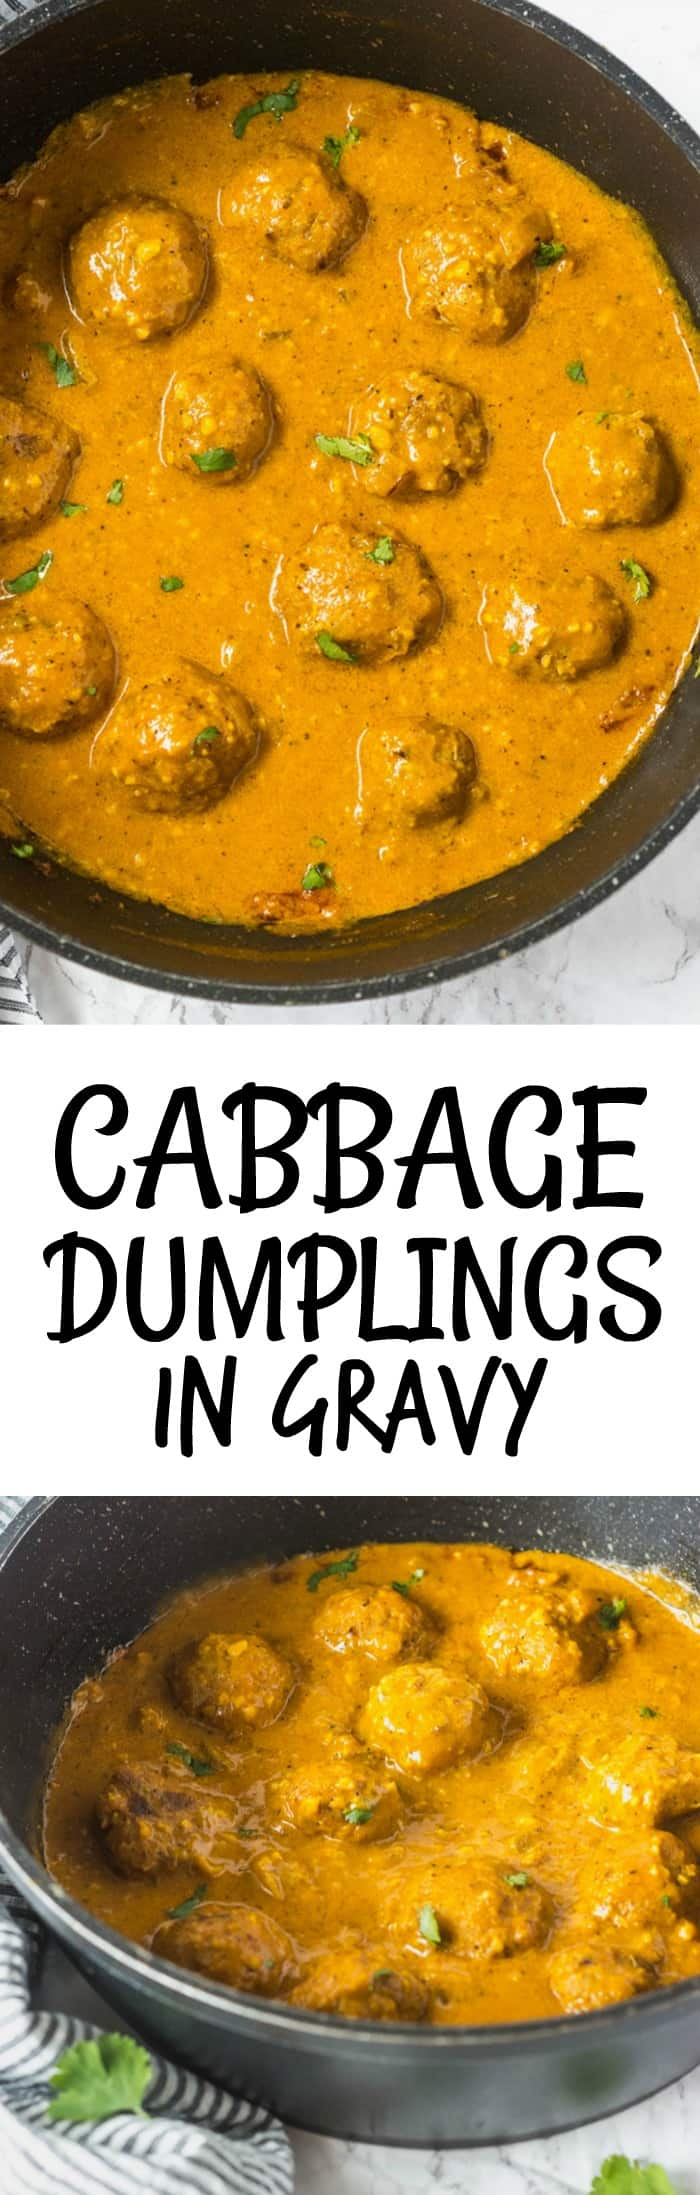 Cabbage Dumplings In Gravy